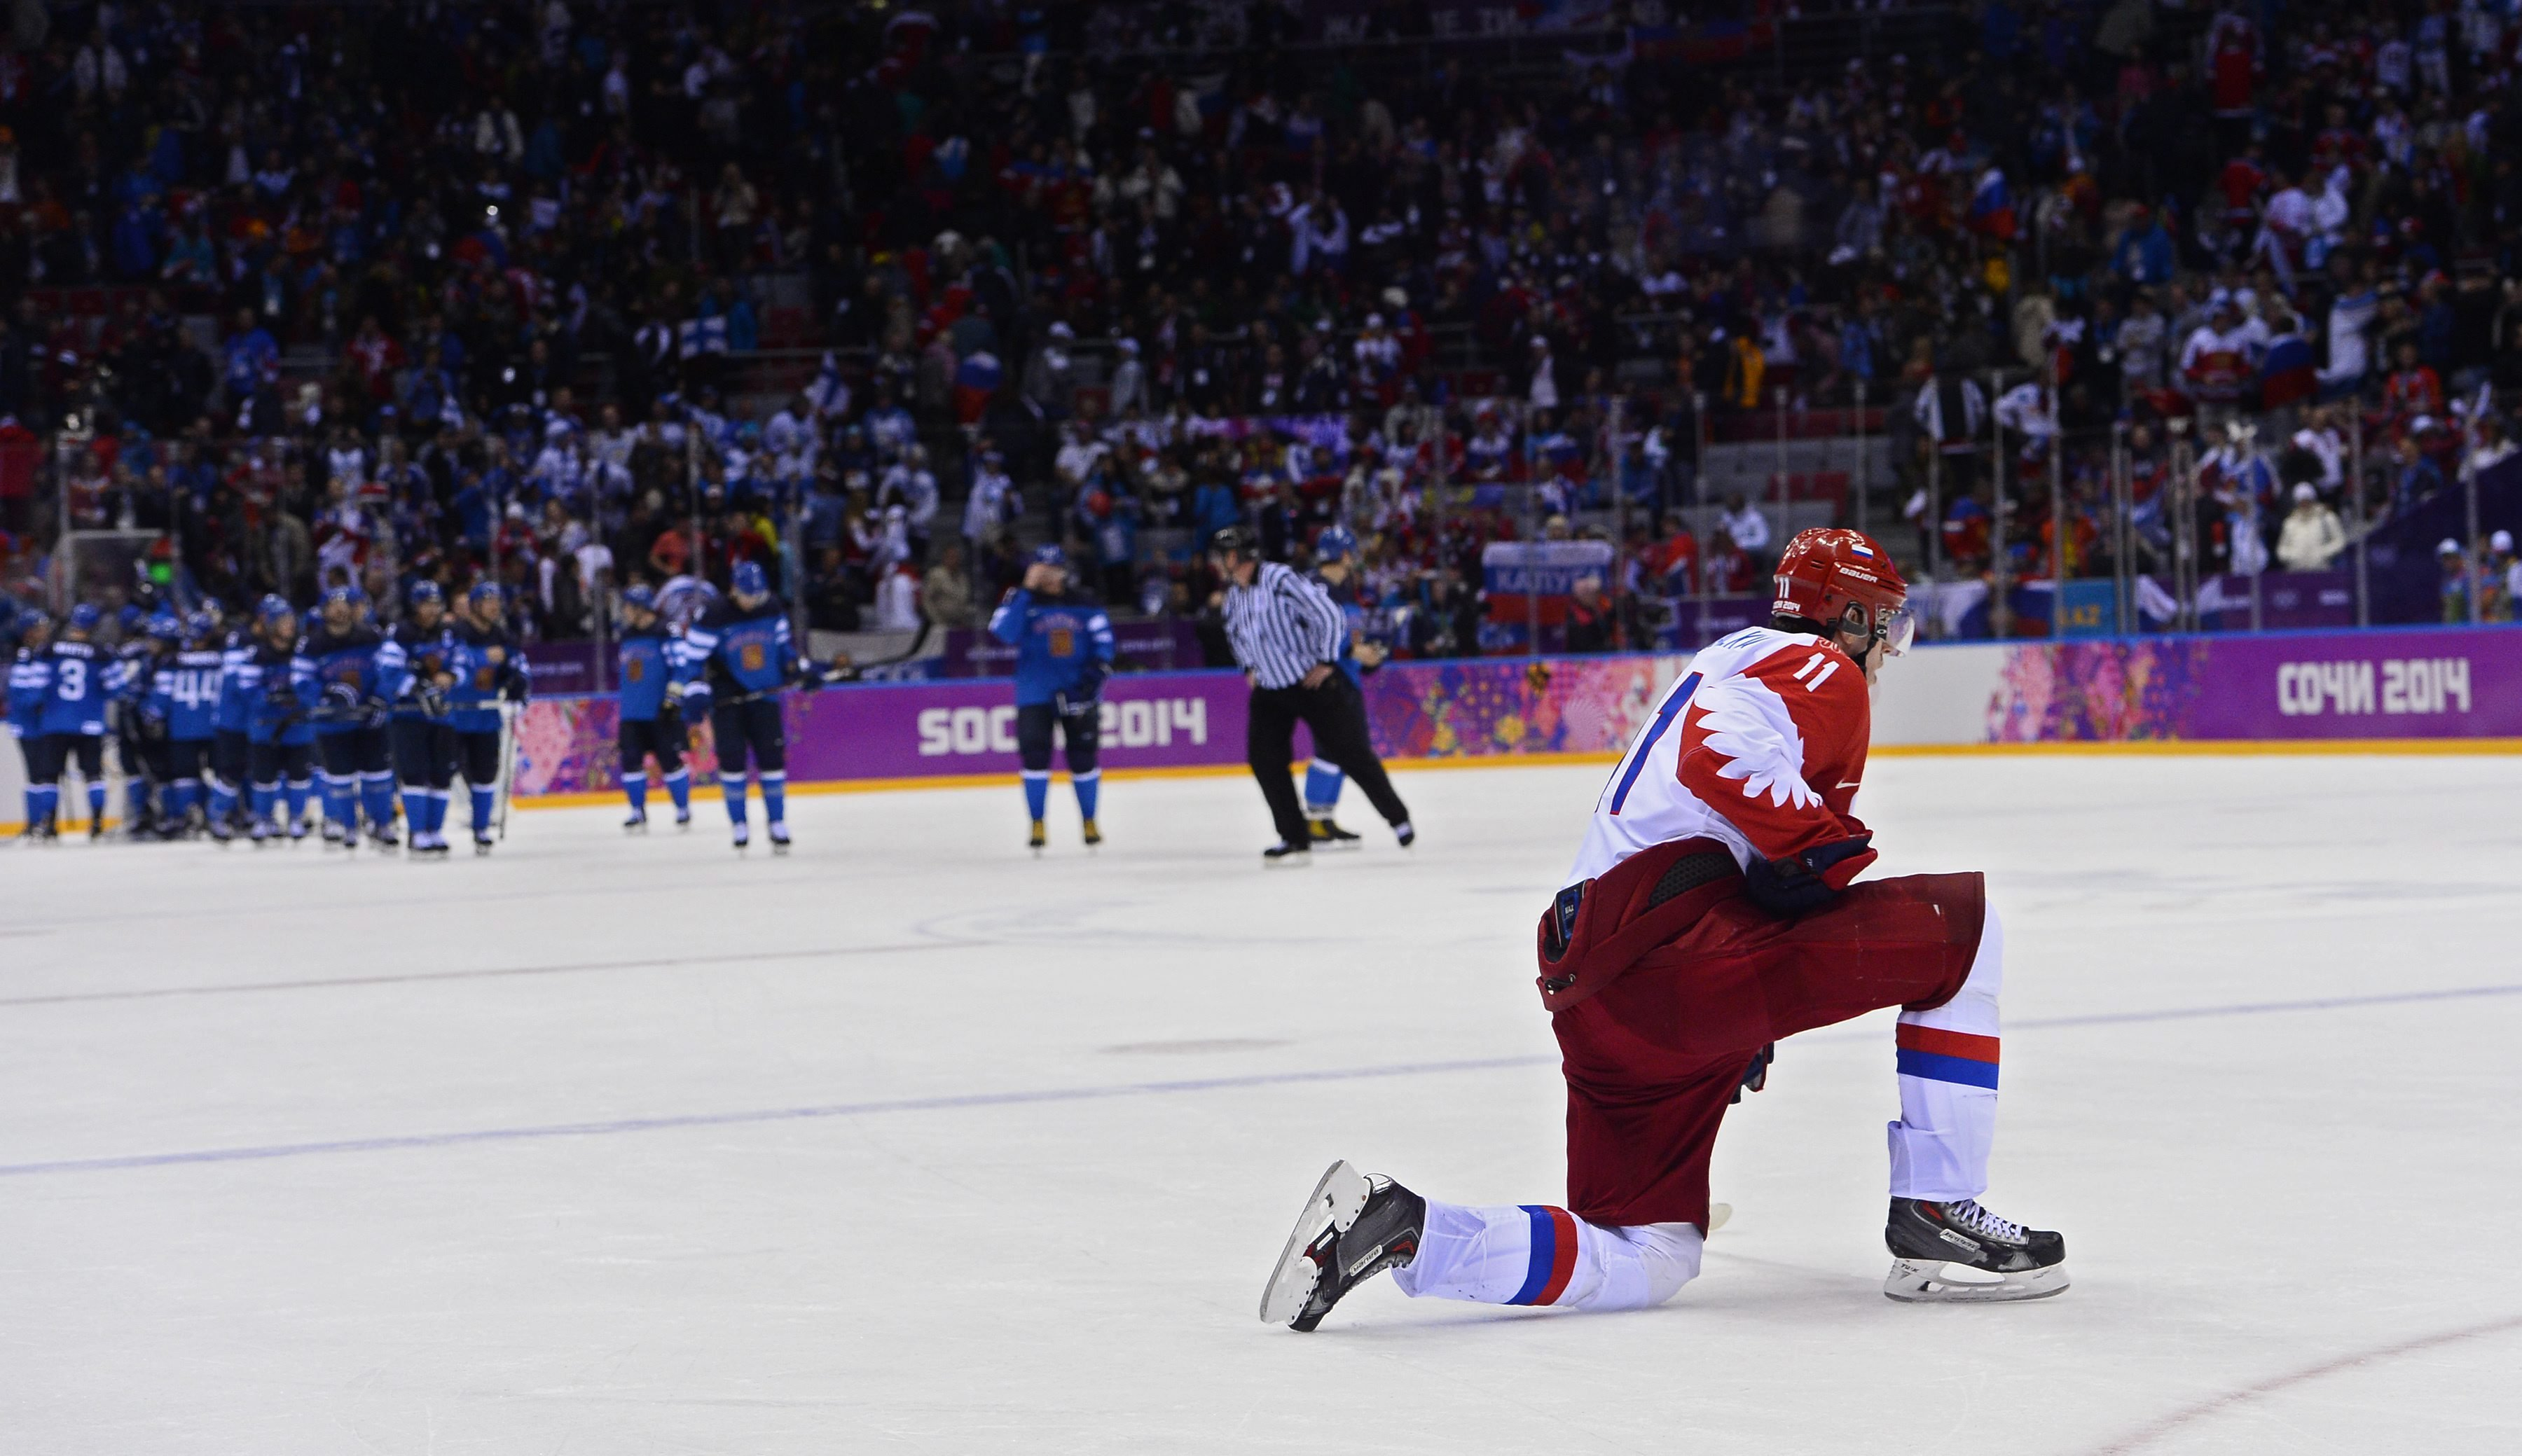 Yevgeni Malkin of Russia kneels on the ice after losing to Finland in the quarter final match between Finland and Russia.